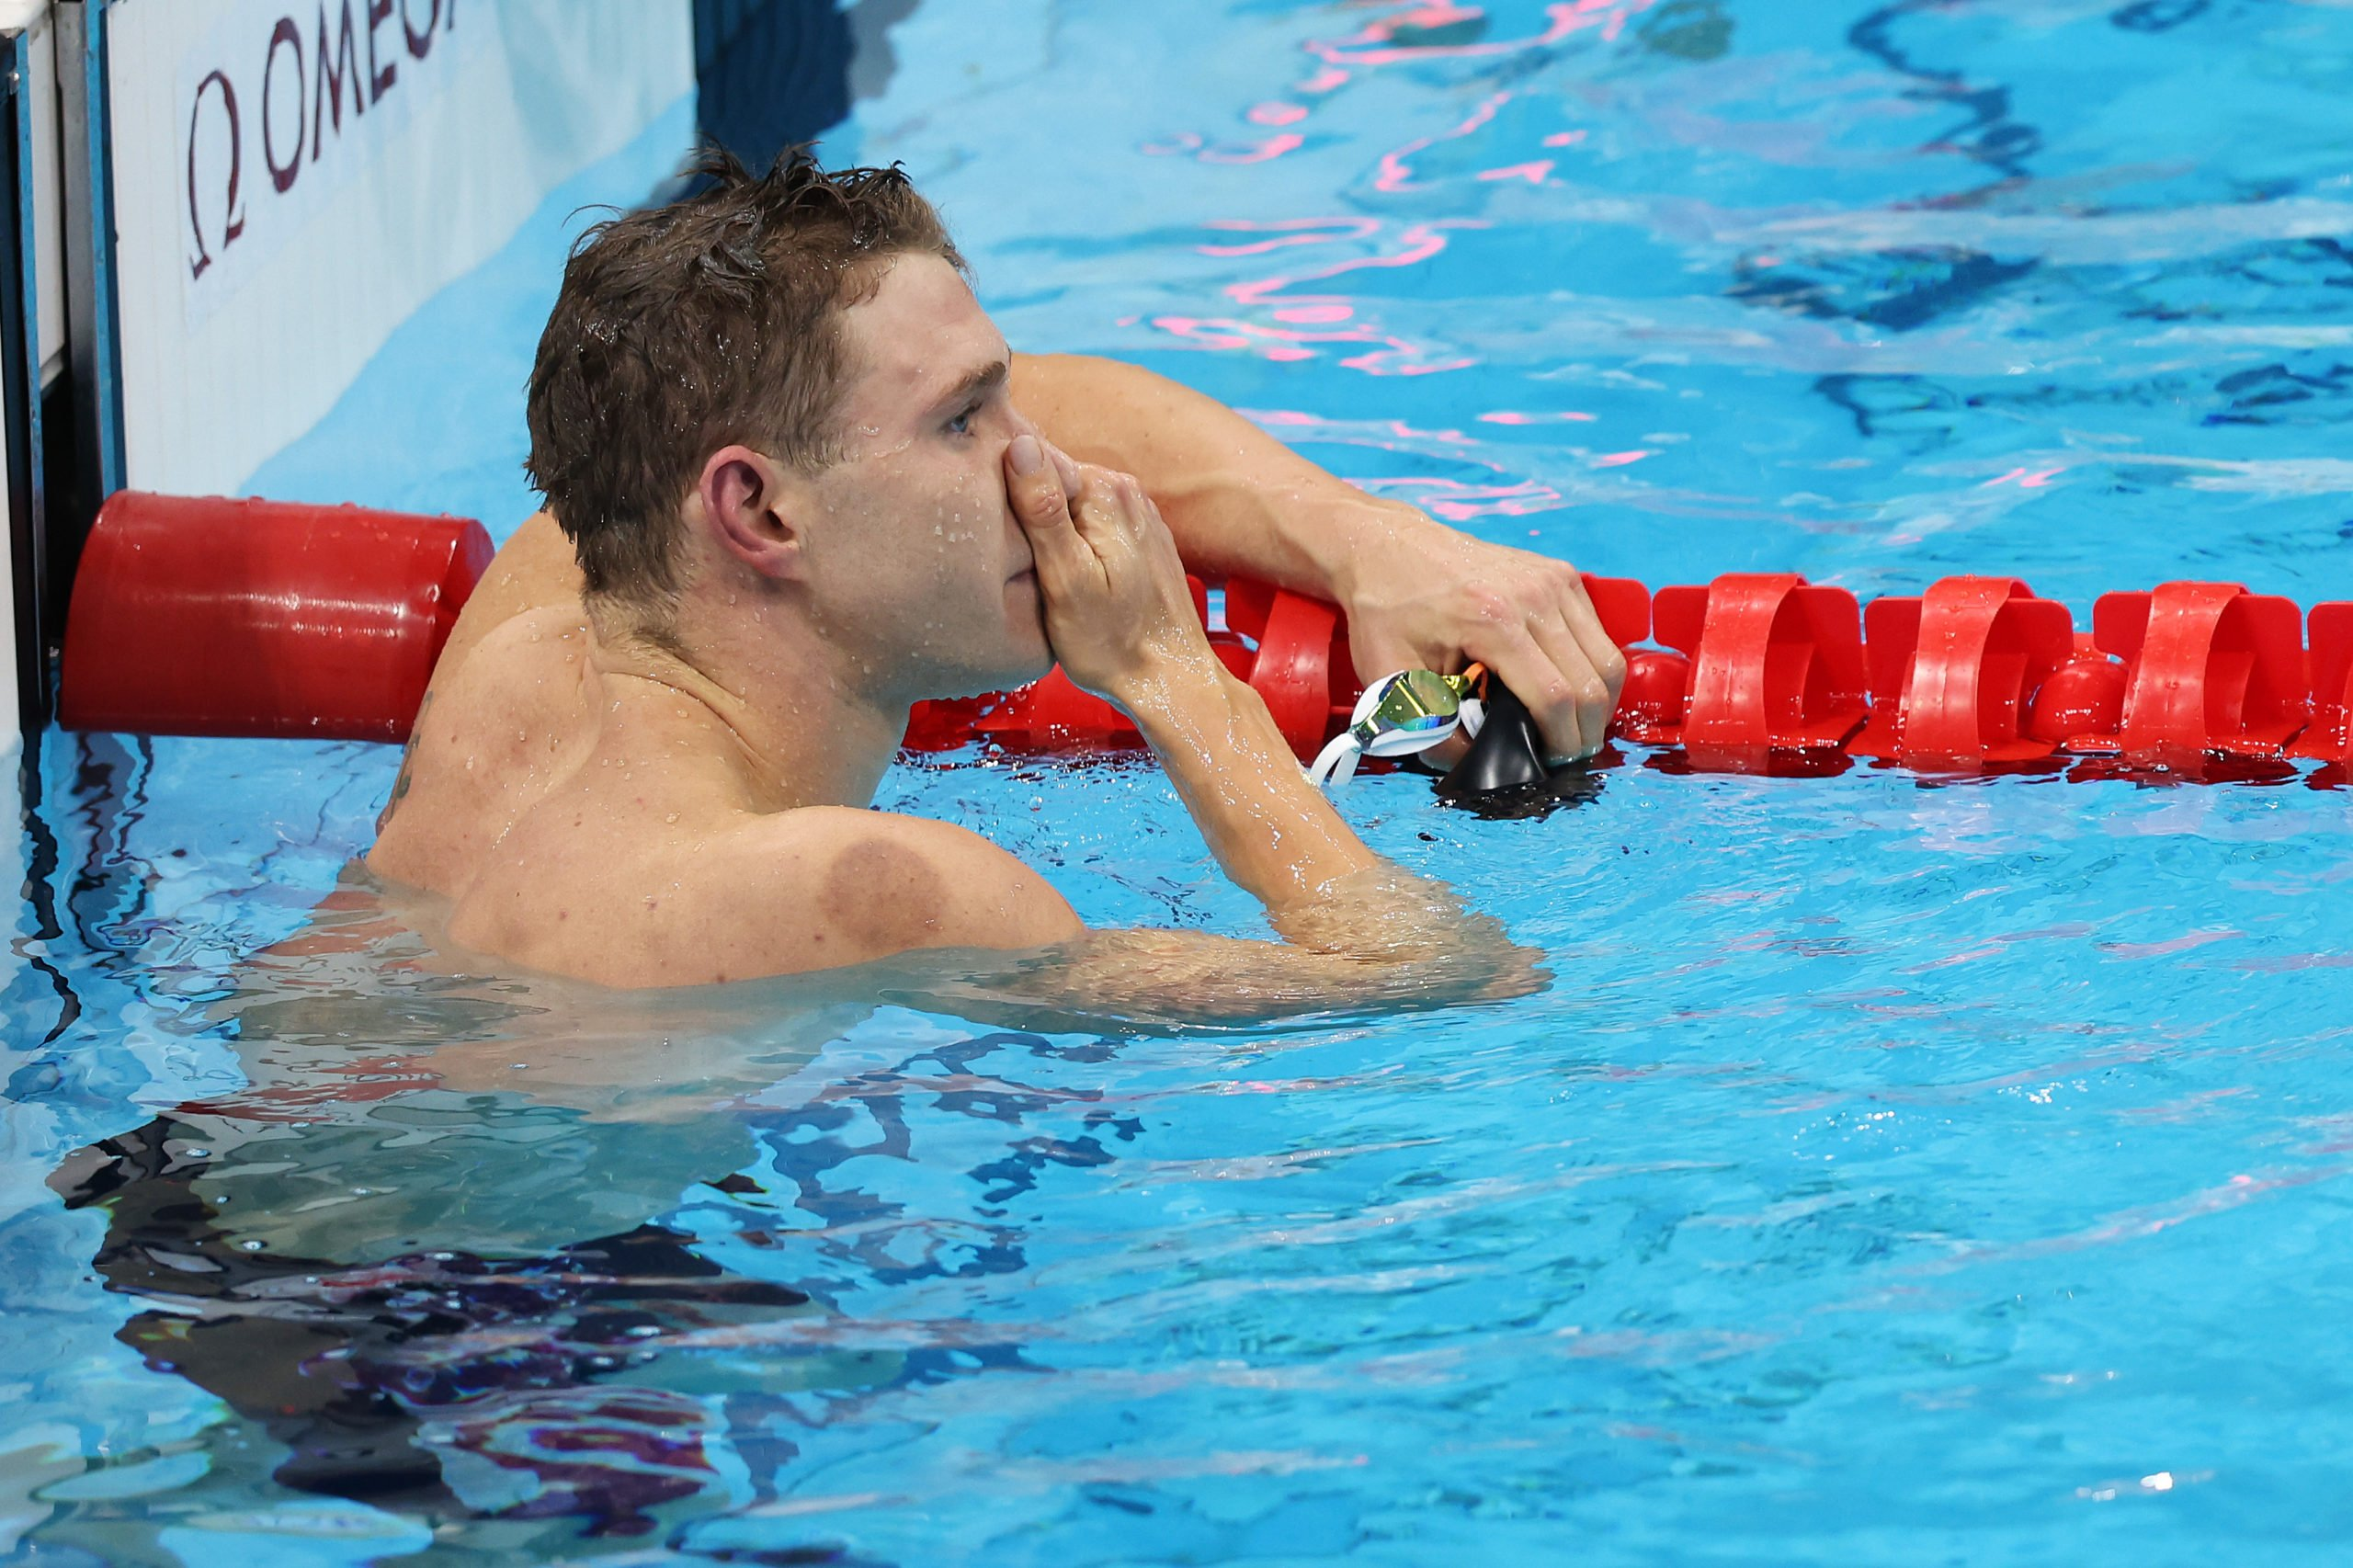 Ryan Murphy of Team United States reacts after competing in the Men's 200m Backstroke Final on day seven of the Tokyo 2020 Olympic Games at Tokyo Aquatics Centre on July 30, 2021 in Tokyo, Japan. (Photo by Tom Pennington/Getty Images)